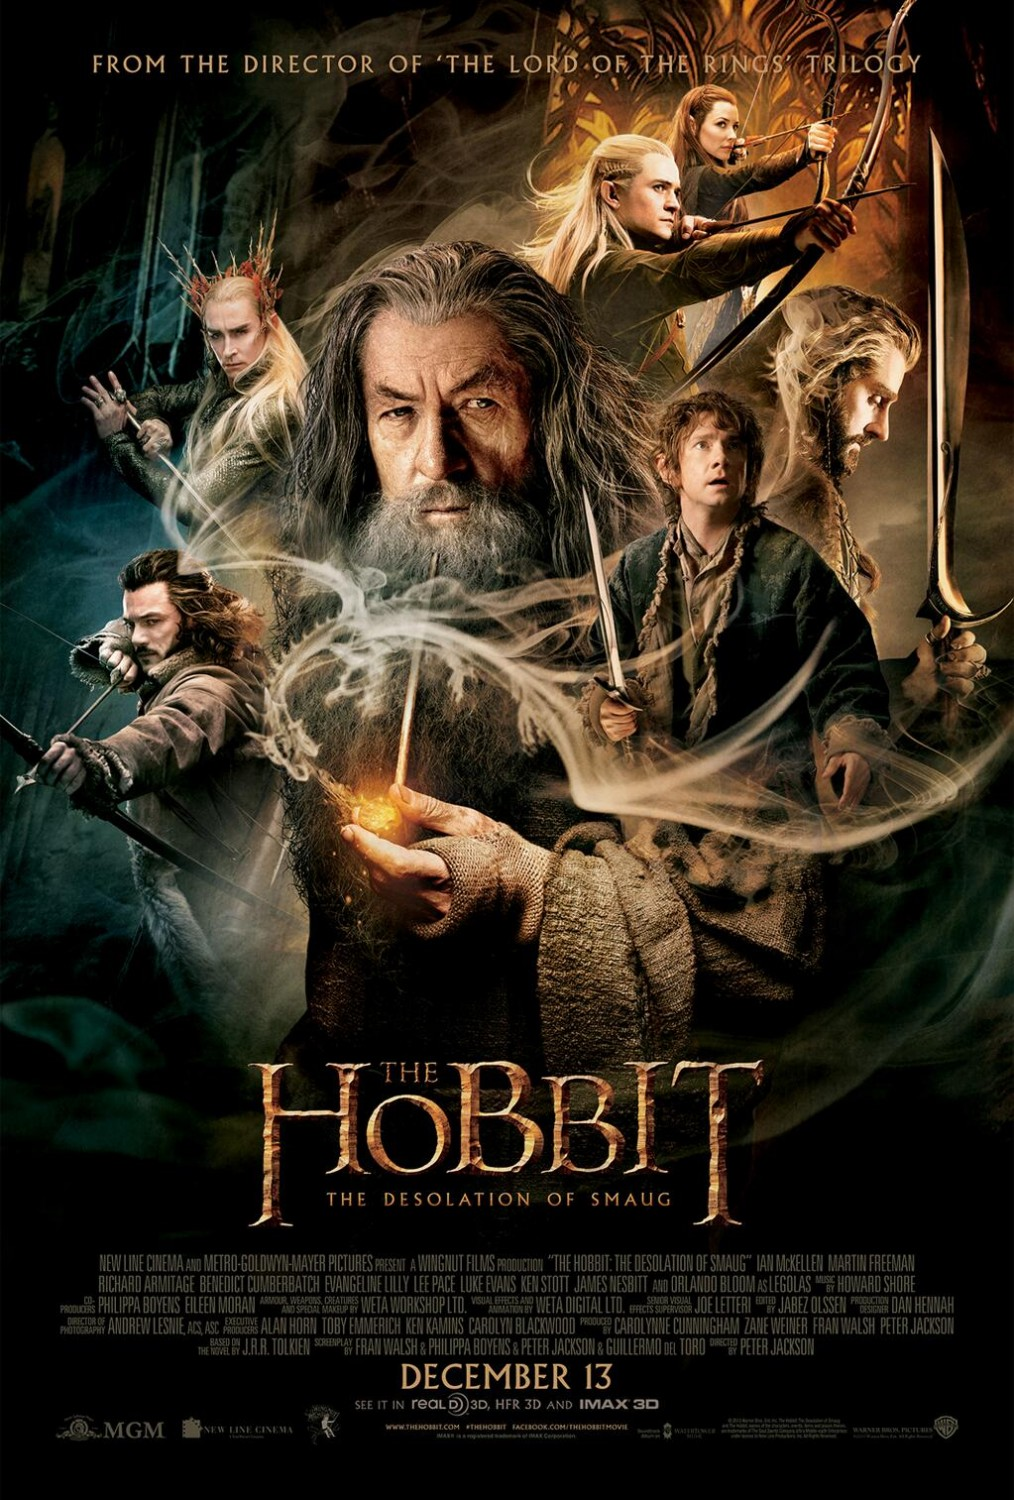 The Hobbit The Desolation of Smaug-Official Poster Banner PROMO POSTER XLG-05NOVEMBRO2013